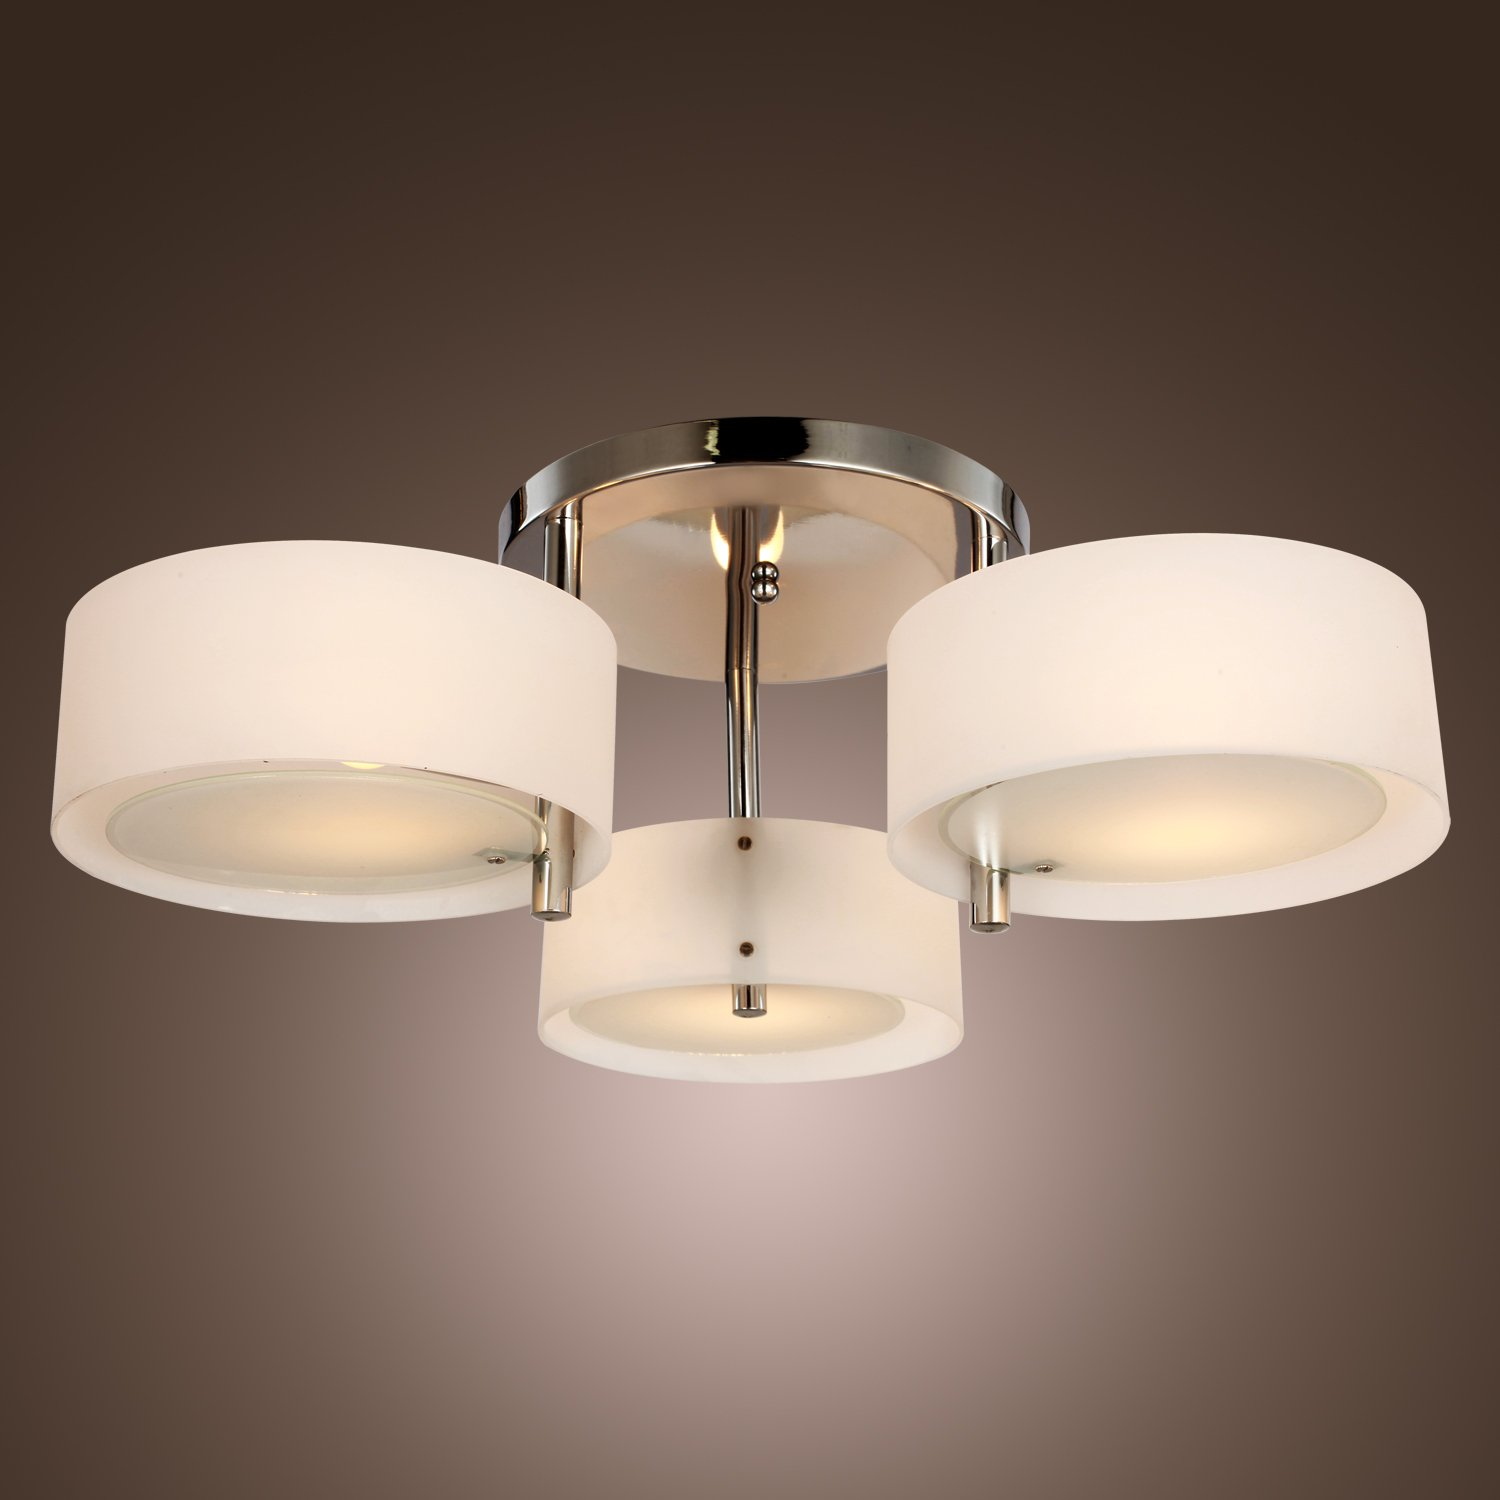 Saint Mossi® Modern Acrylic Flush Chandelier Ceiling Lights For Living Room  Bedroom With 3 Lights In Chrome Finish: Amazon.co.uk: Lighting Part 91